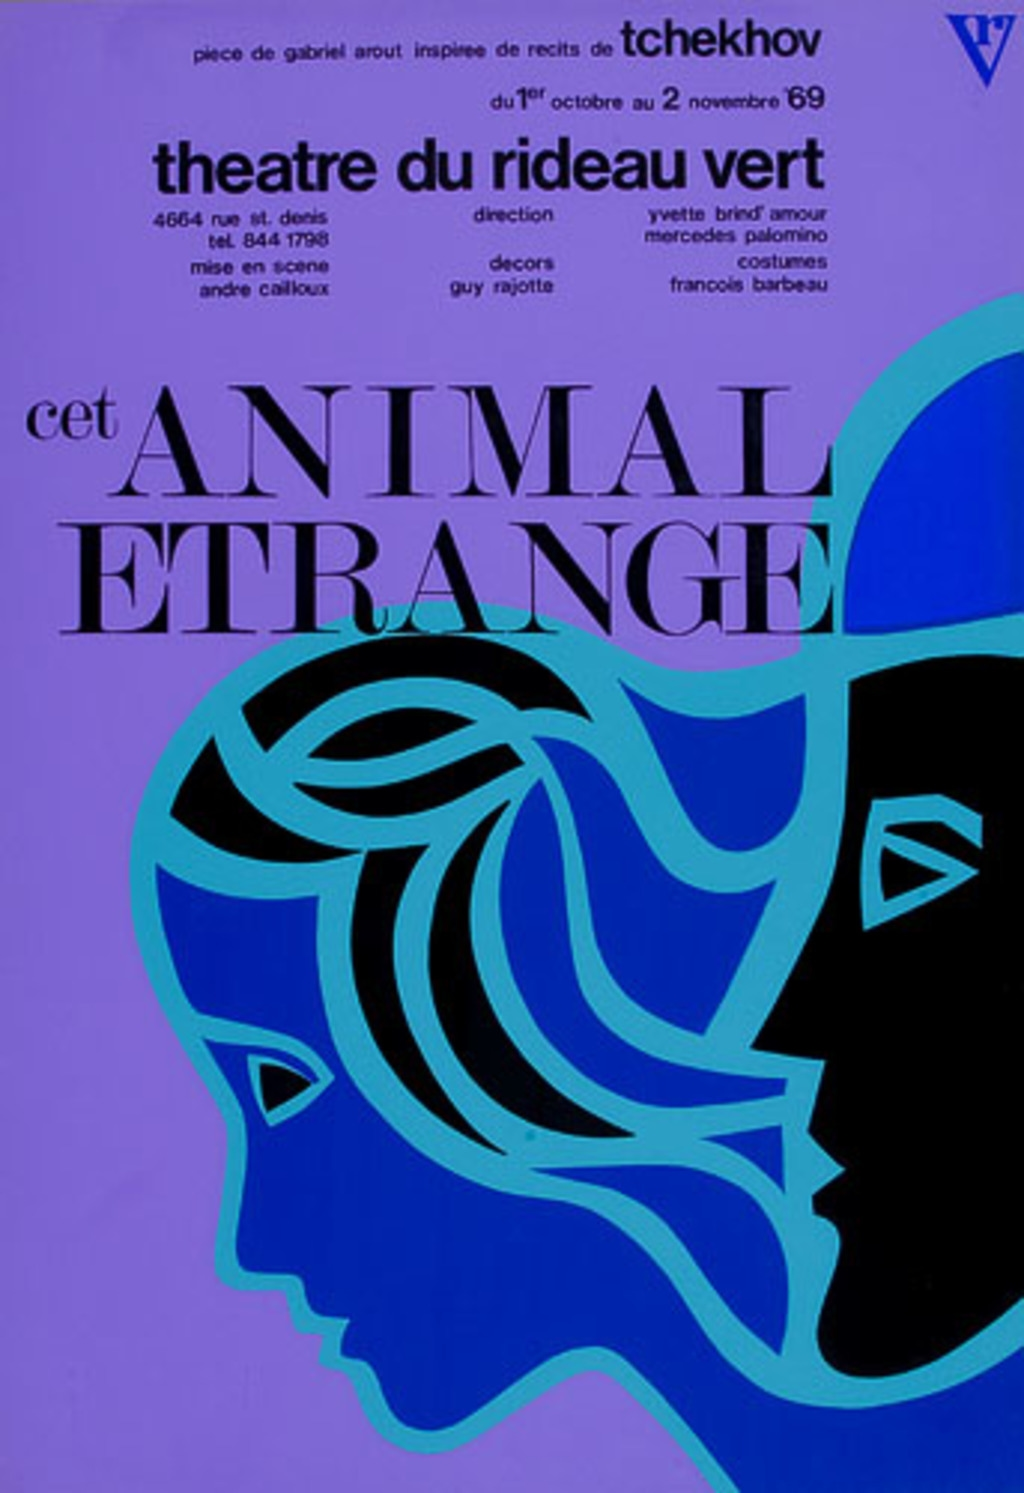 Cet animal étrange